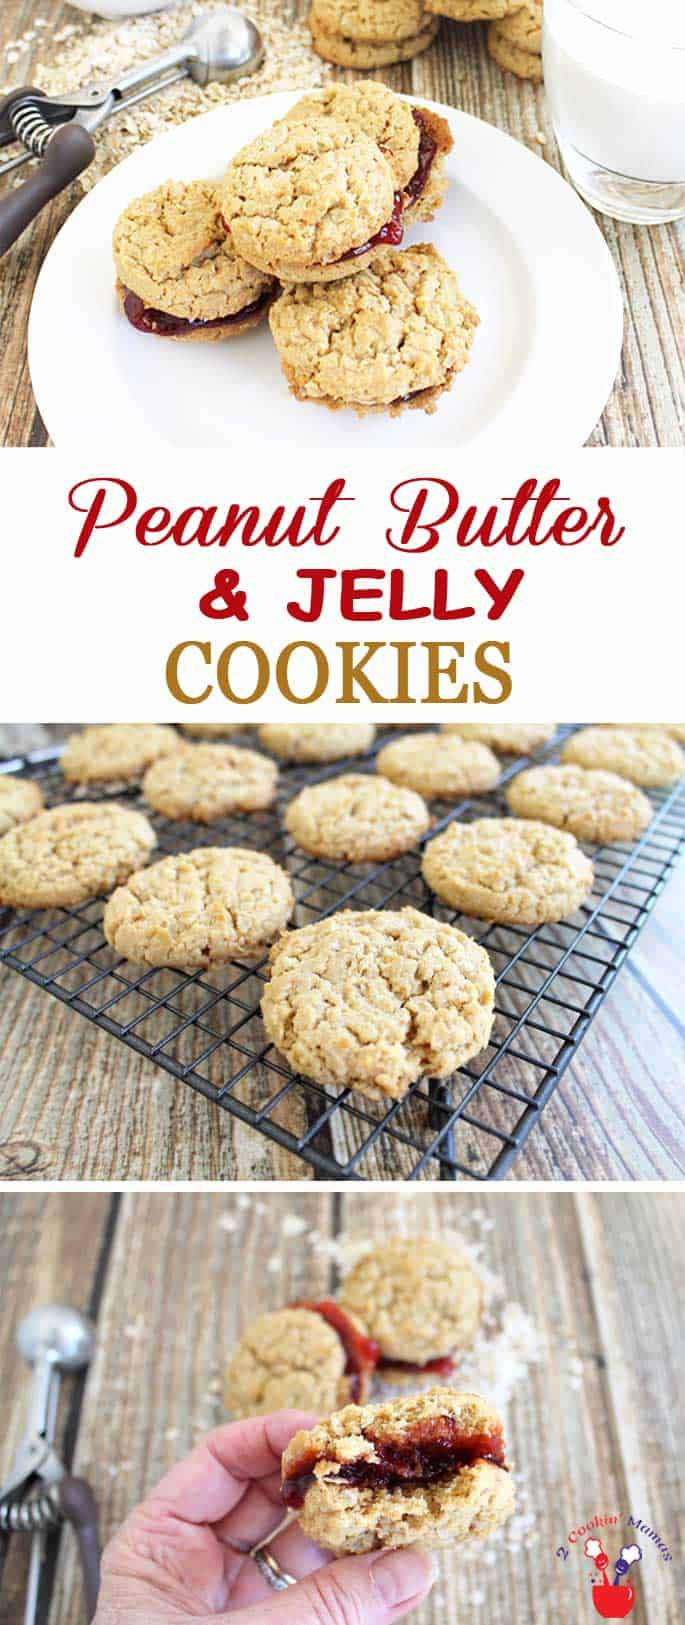 Peanut Butter and Jelly Cookies | 2 Cookin Mamas A peanut butter & jelly cookie? Yep! Your favorite sandwich just became a cookie. Sweet jelly is sandwiched between rich peanut butter cookies, for the perfect after school treat.